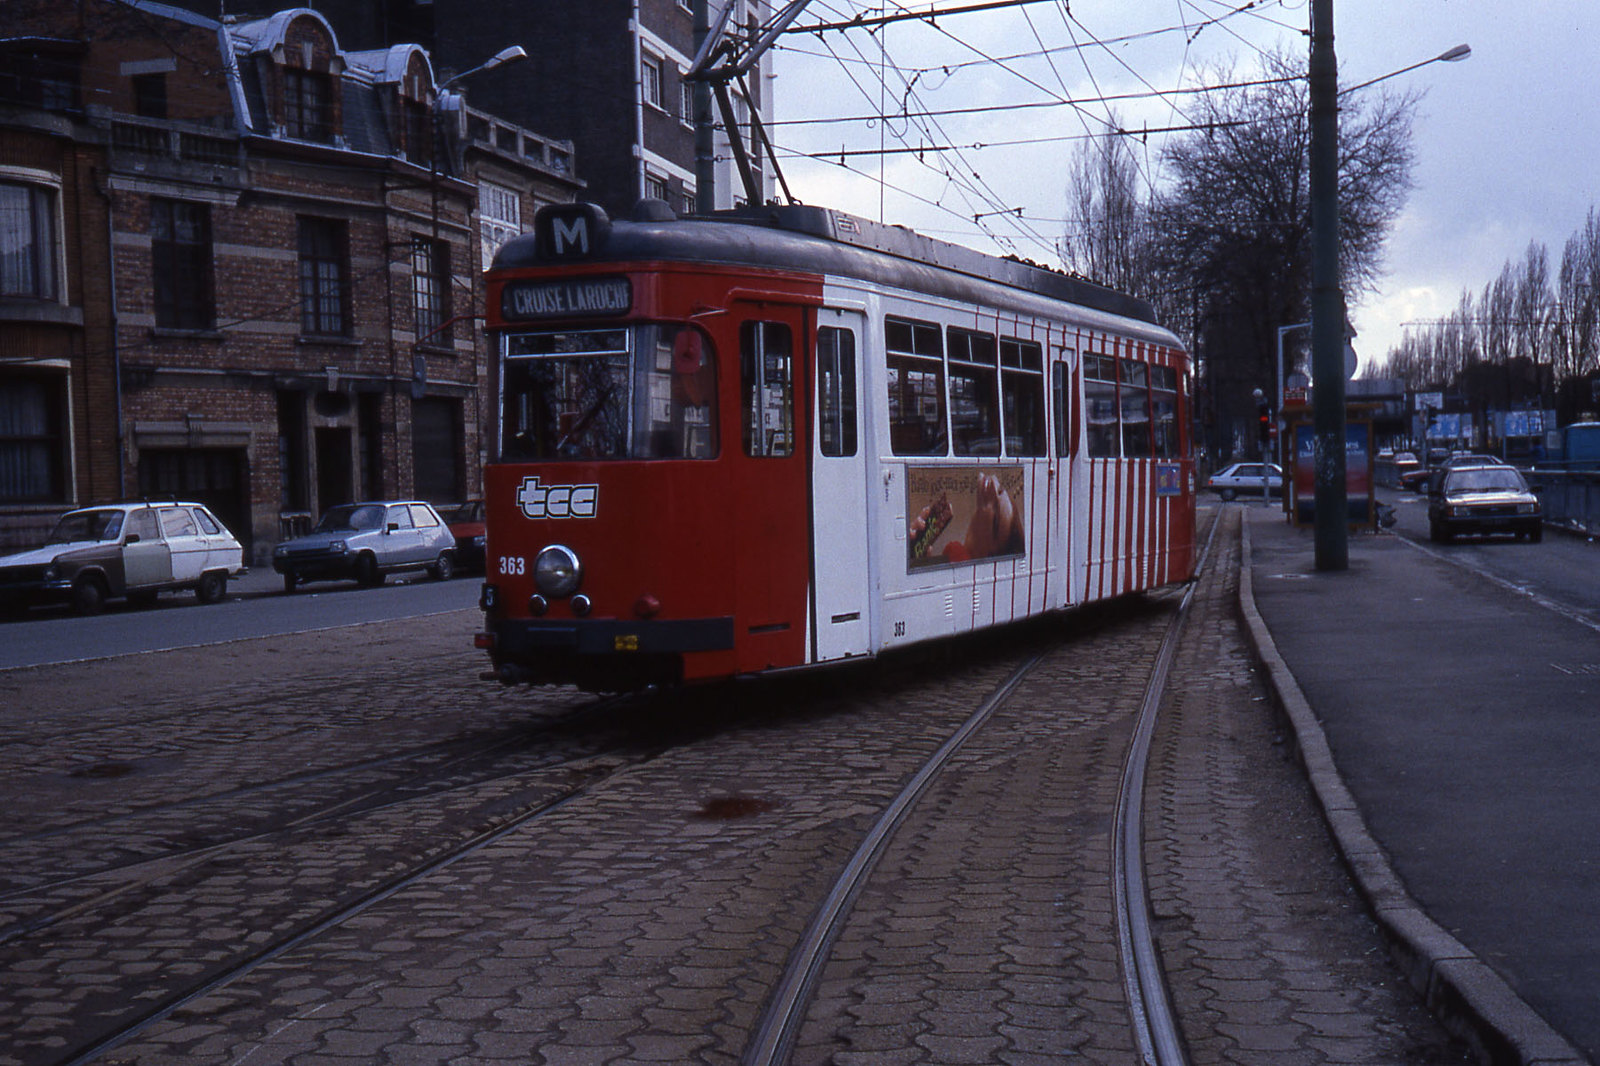 JHM-1986-0094 - France, ELRT, tramway Lille-Roubaix-Tourcoing